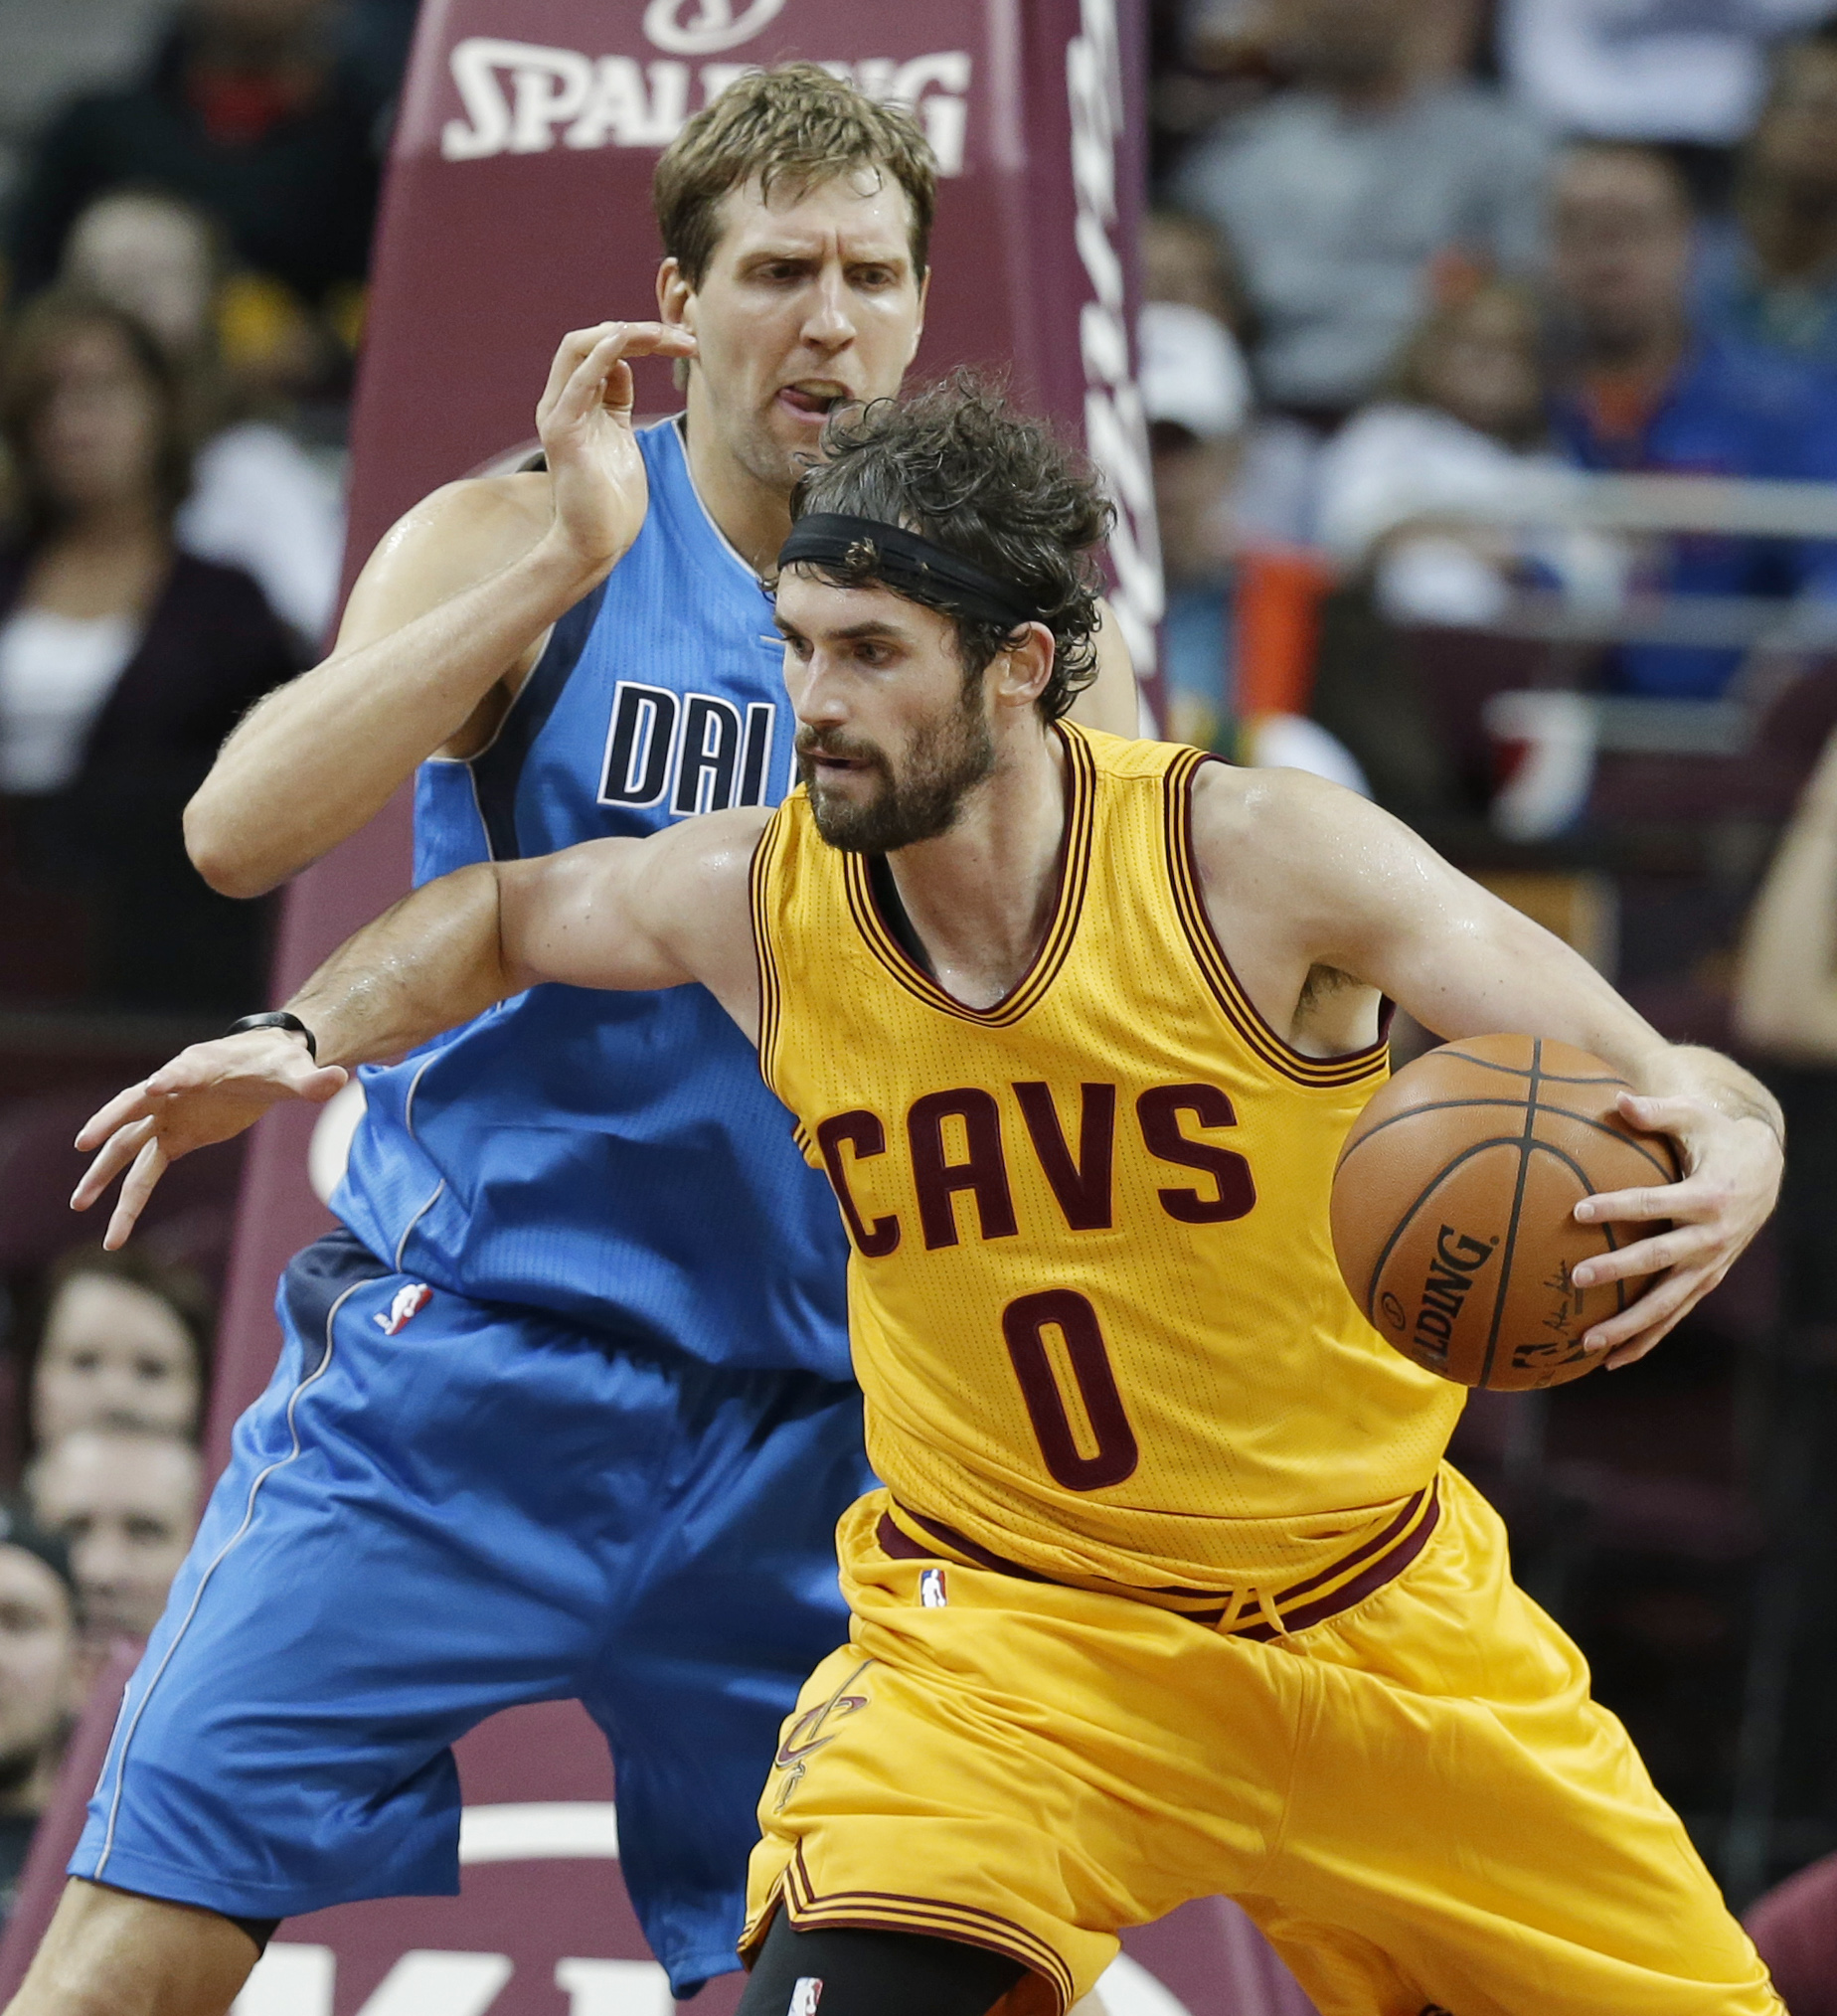 Cleveland Cavaliers' Kevin Love, right, drives past Dallas Mavericks' Dirk Nowitzki, from Germany, in the second half of an NBA preseason basketball game Monday, Oct. 19, 2015, in Cleveland. The Cavaliers won 103-97. (AP Photo/Tony Dejak)